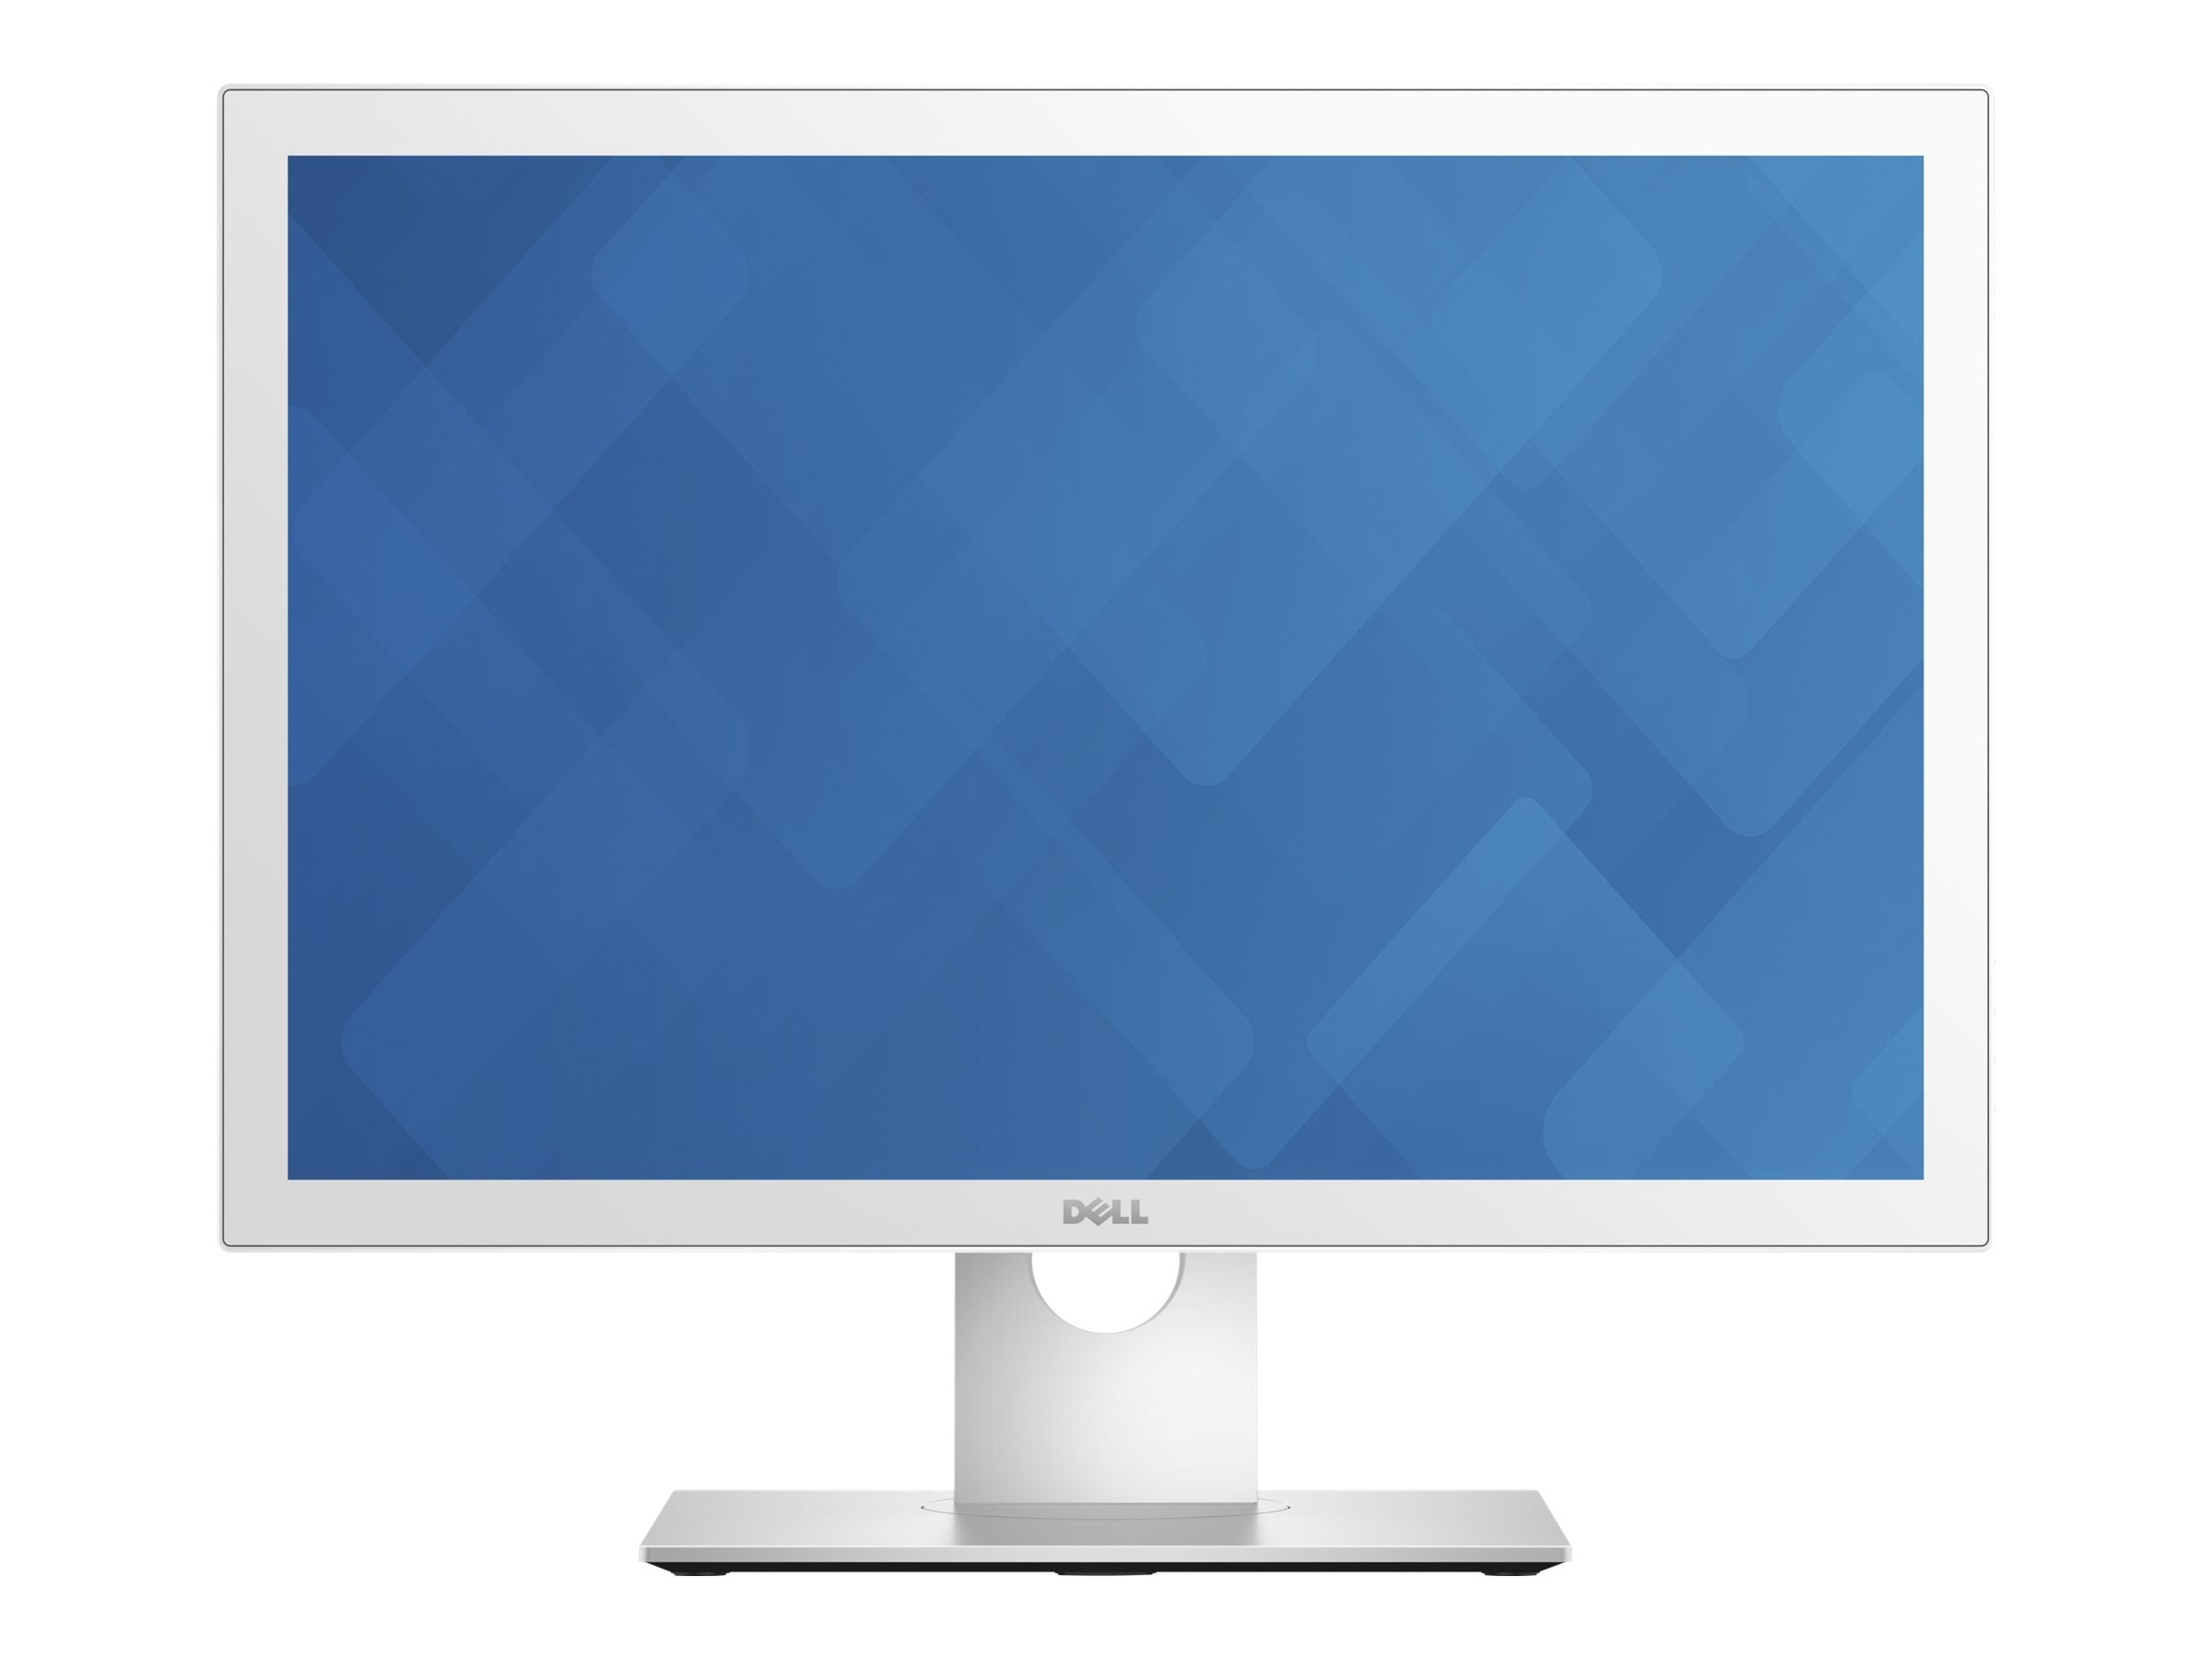 Dell 24 MR2416 LED-LCD Medical Monitor, White